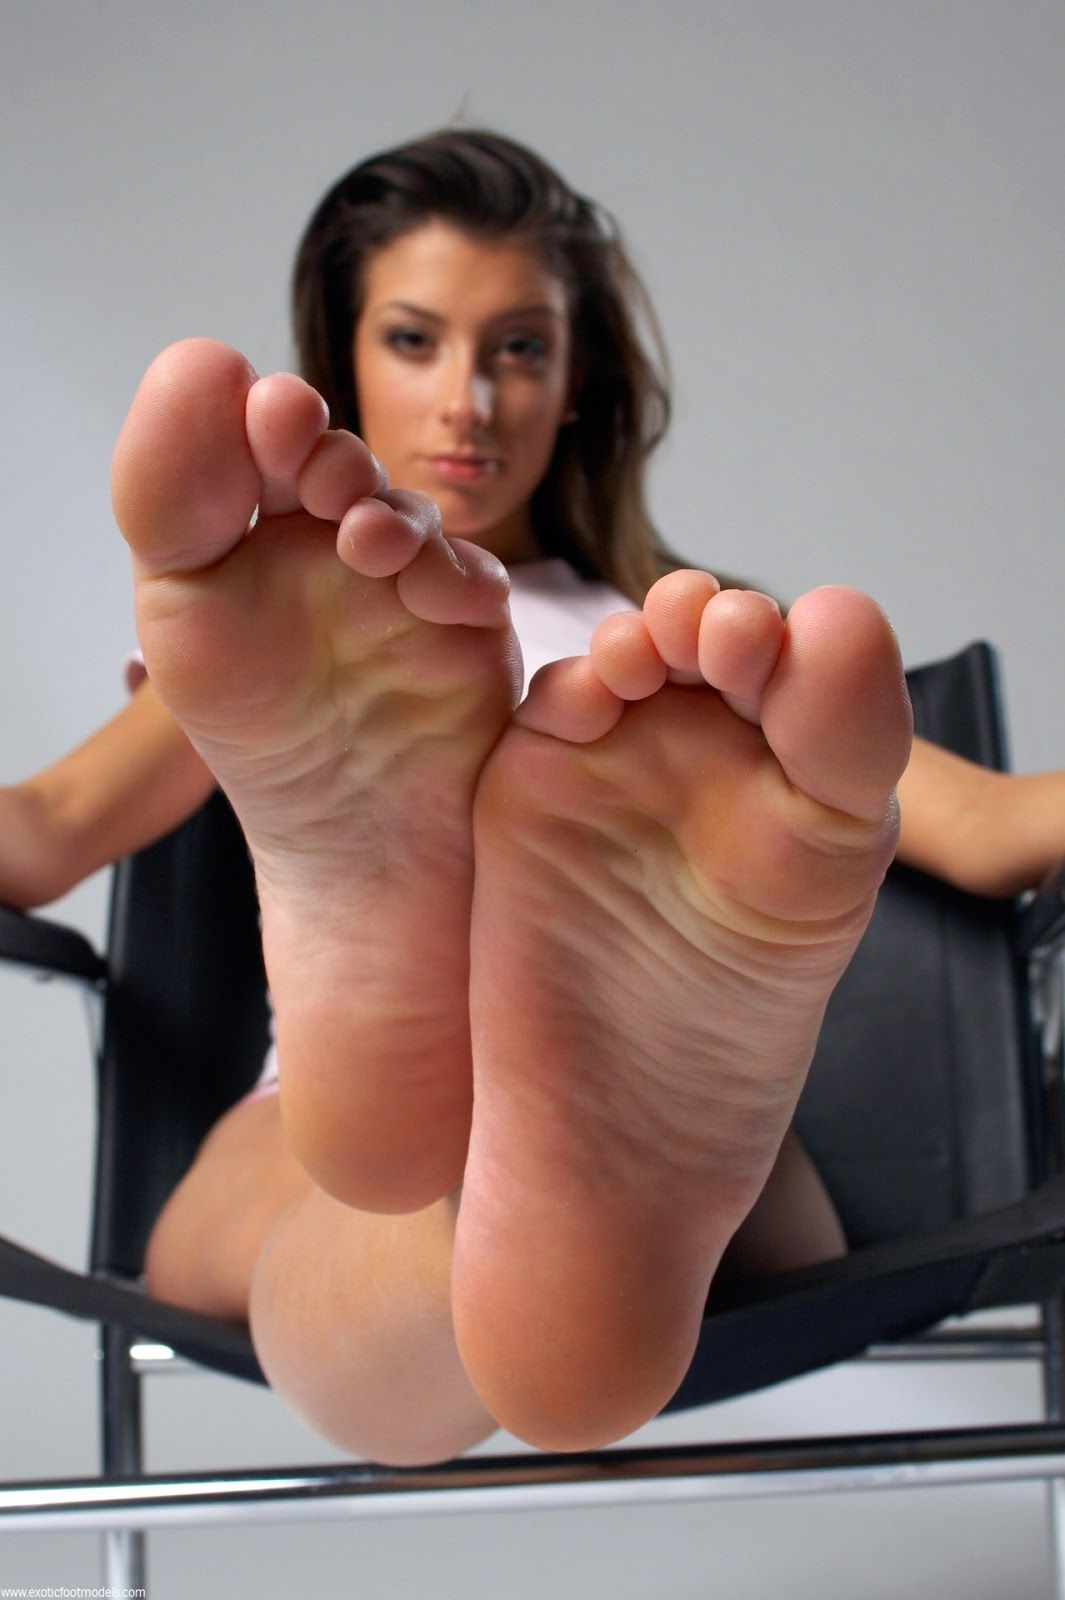 pies sexys | girl feet | pinterest | sexy feet, nice and legs